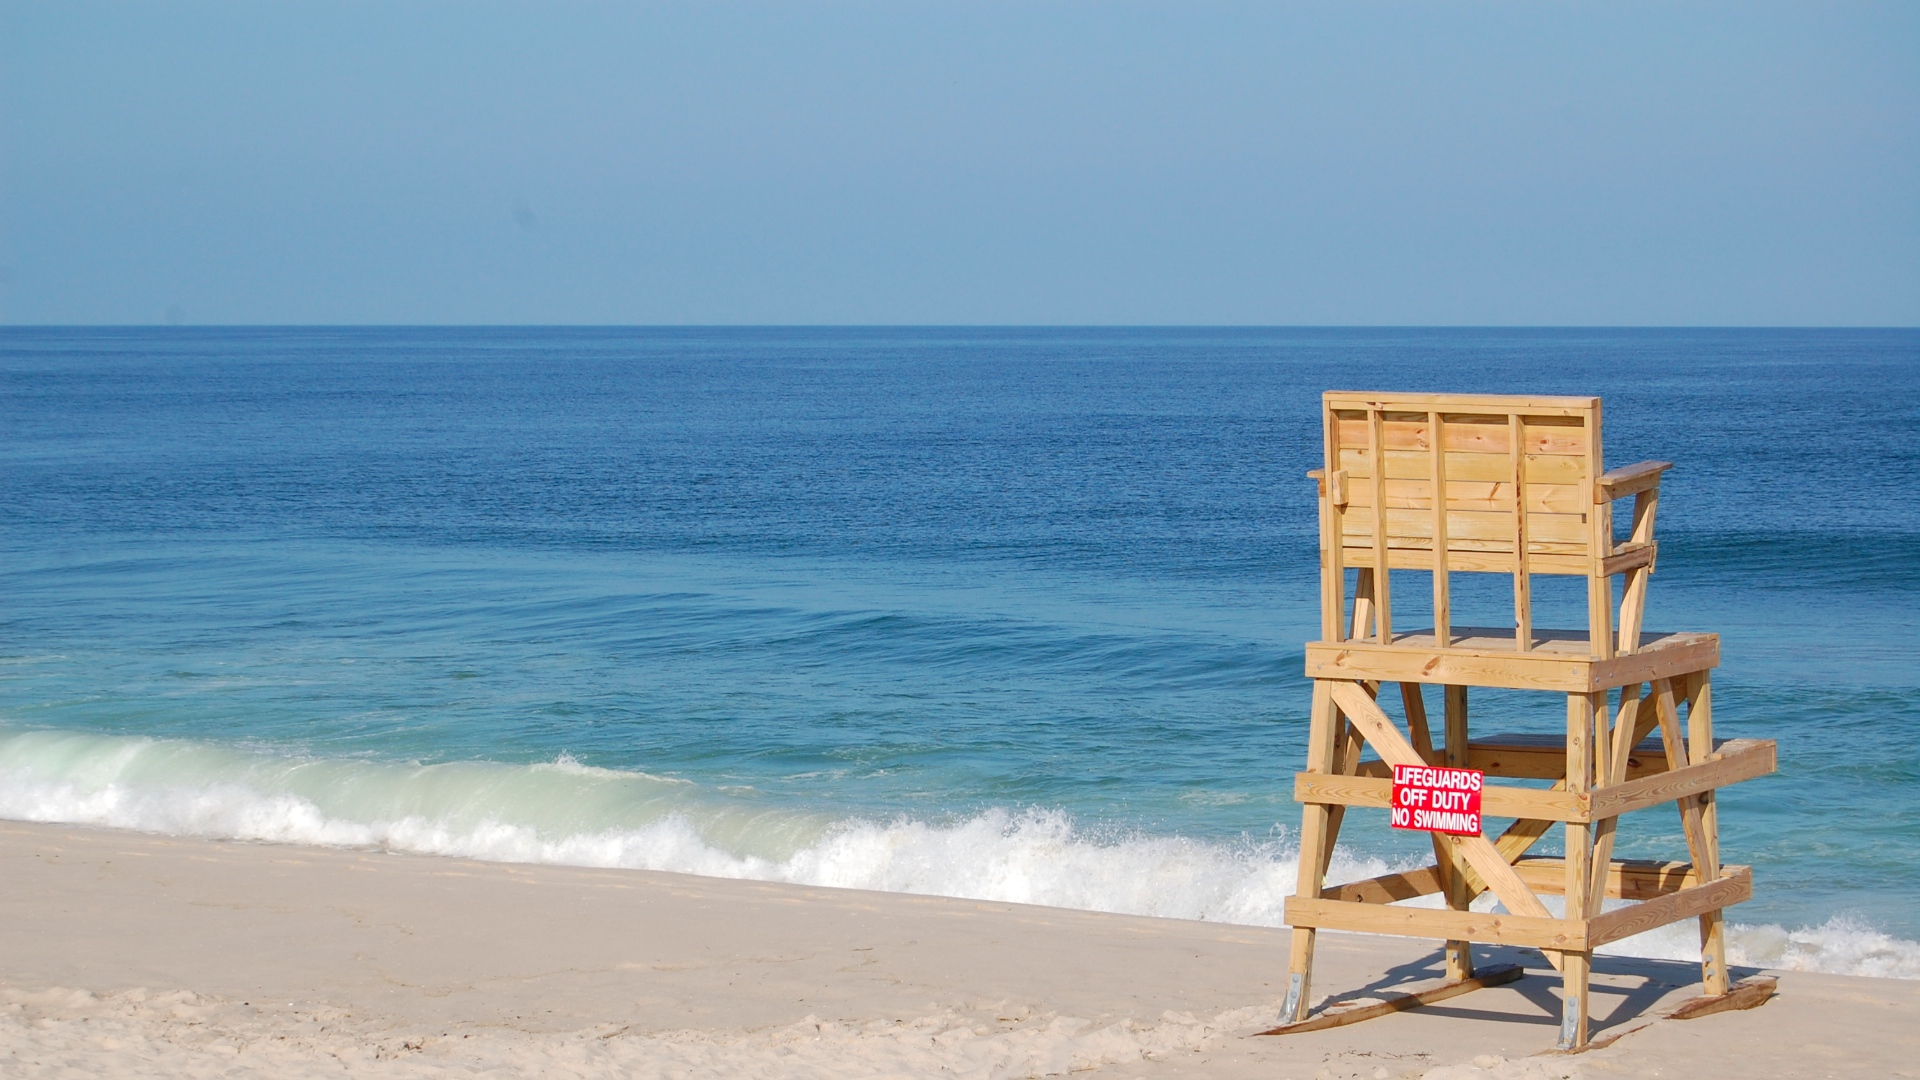 A lifeguard stand at Brick Beach III. (Photo: Daniel Nee)